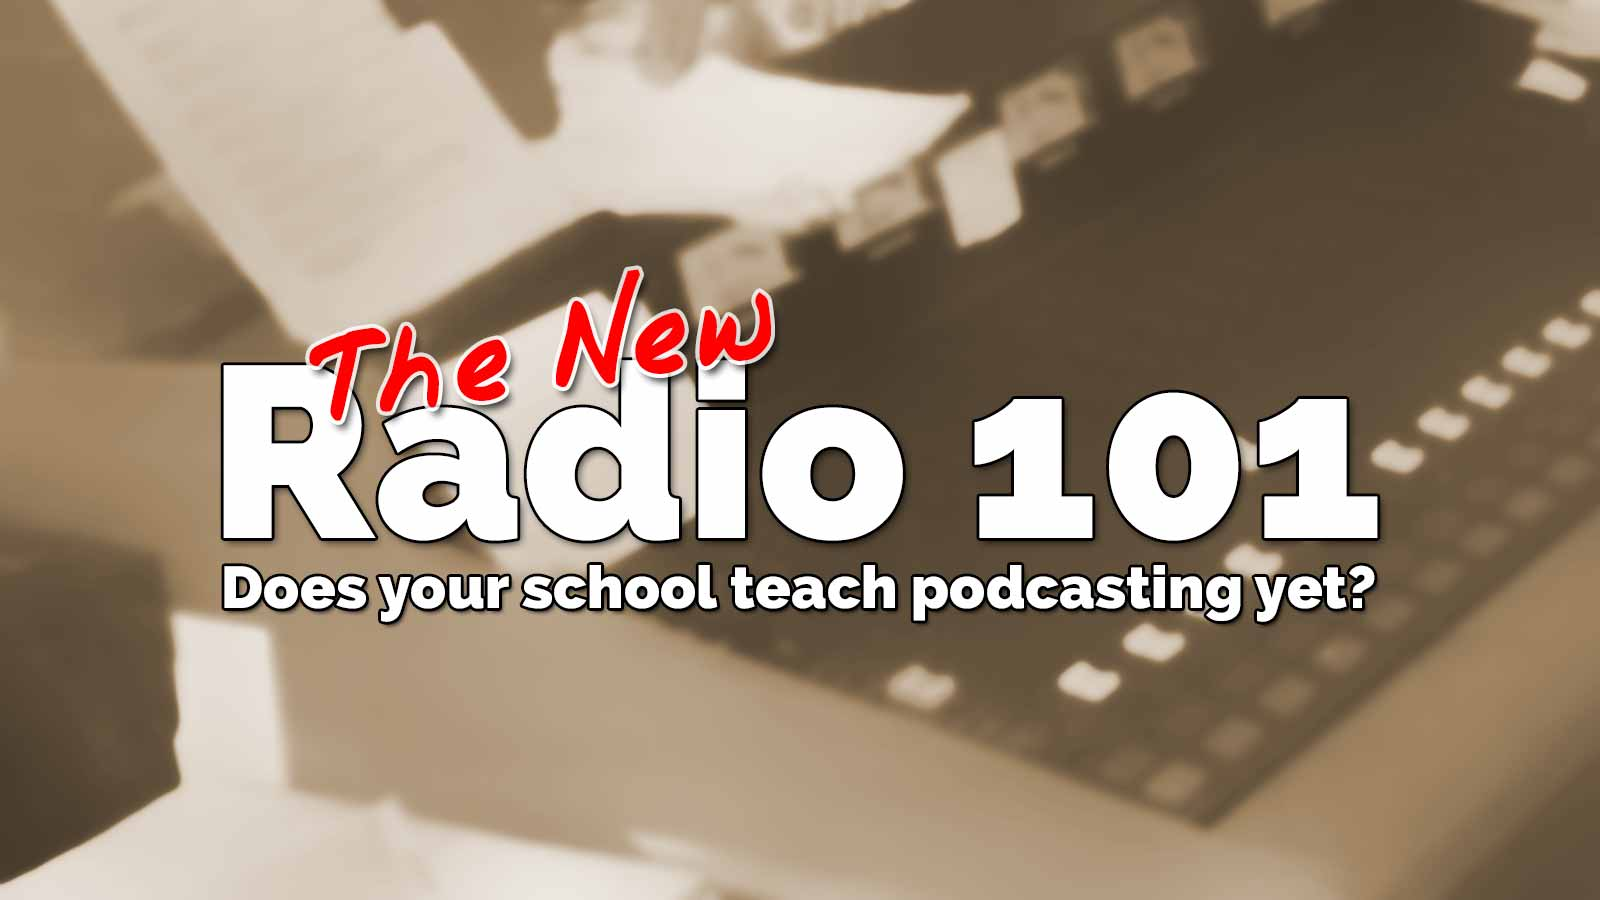 Does your school teach podcasting yet? The New Radio 101